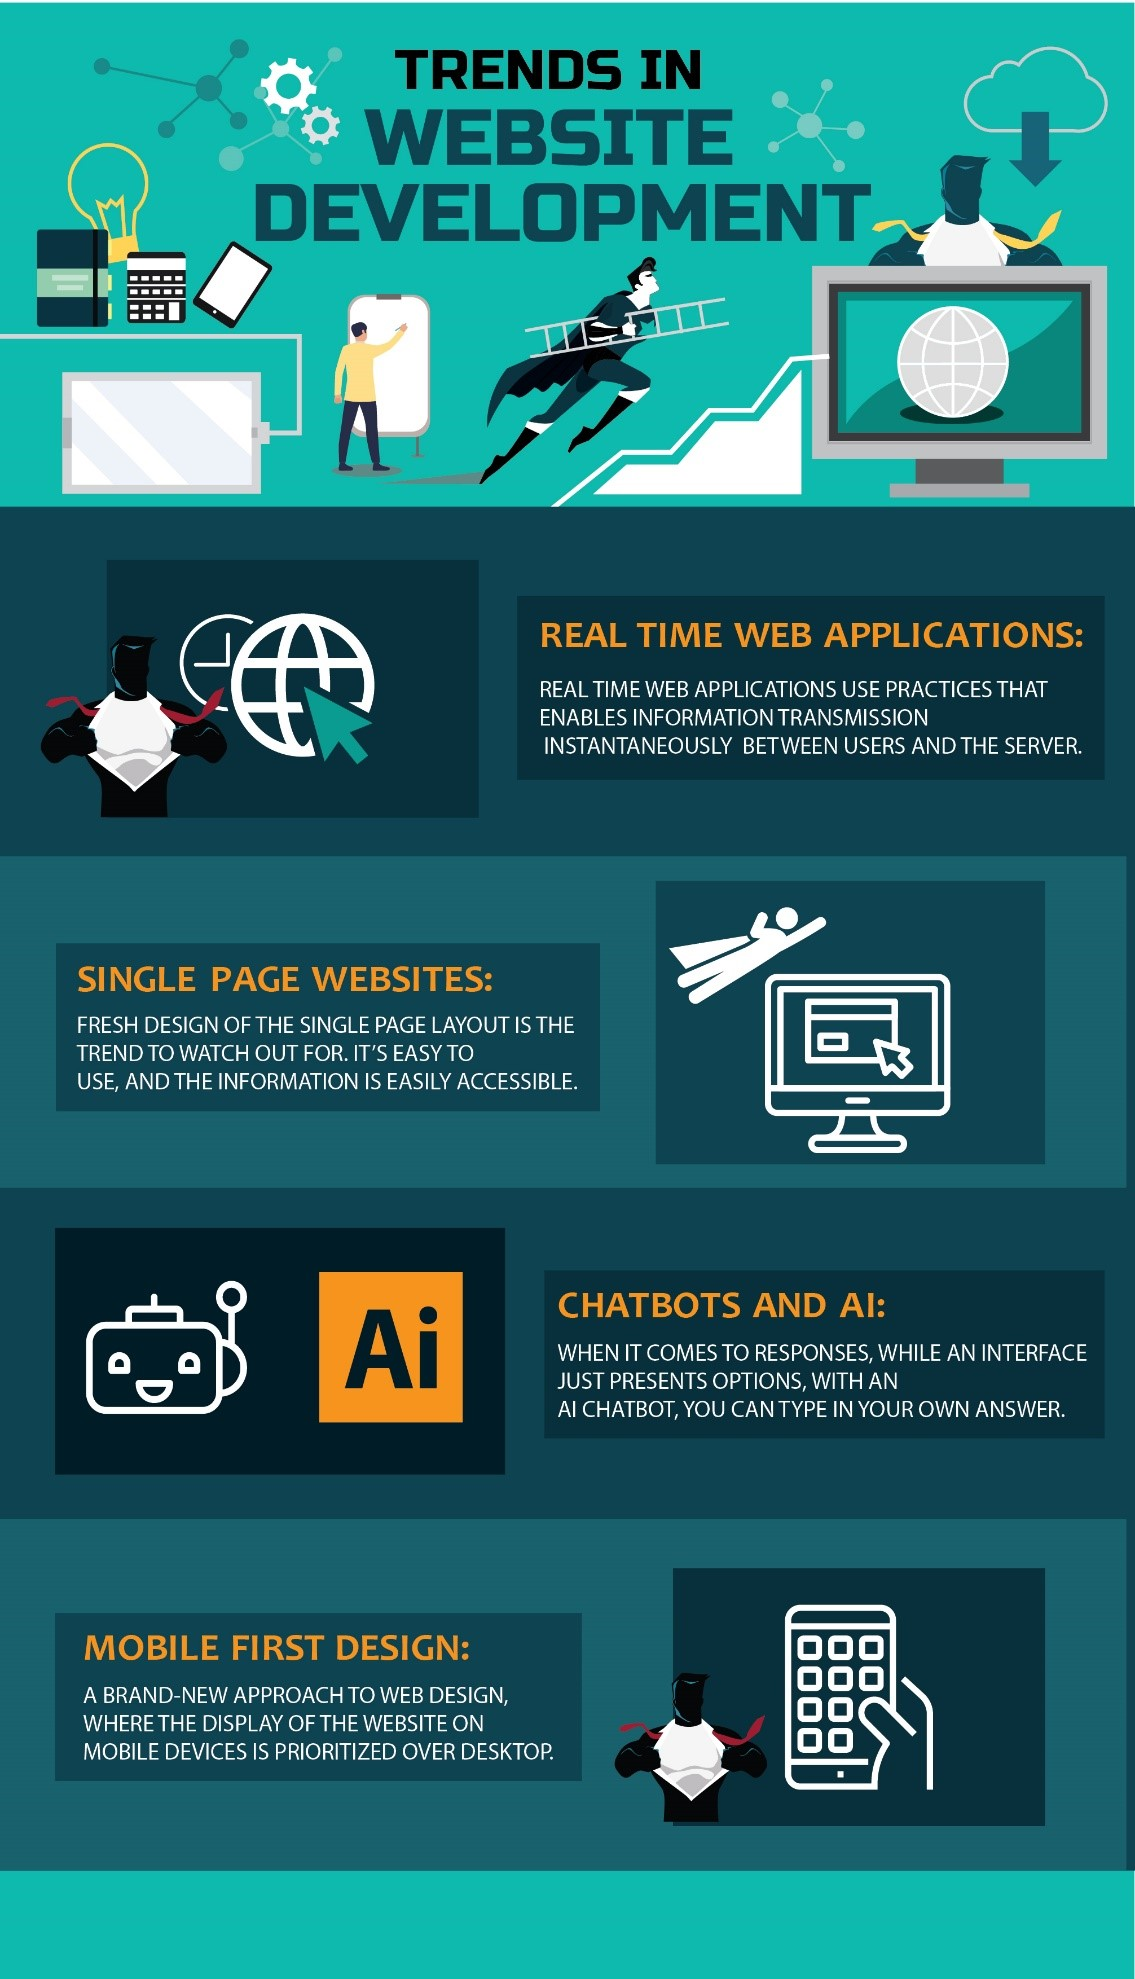 Website Development Trends in 2019. Infographic